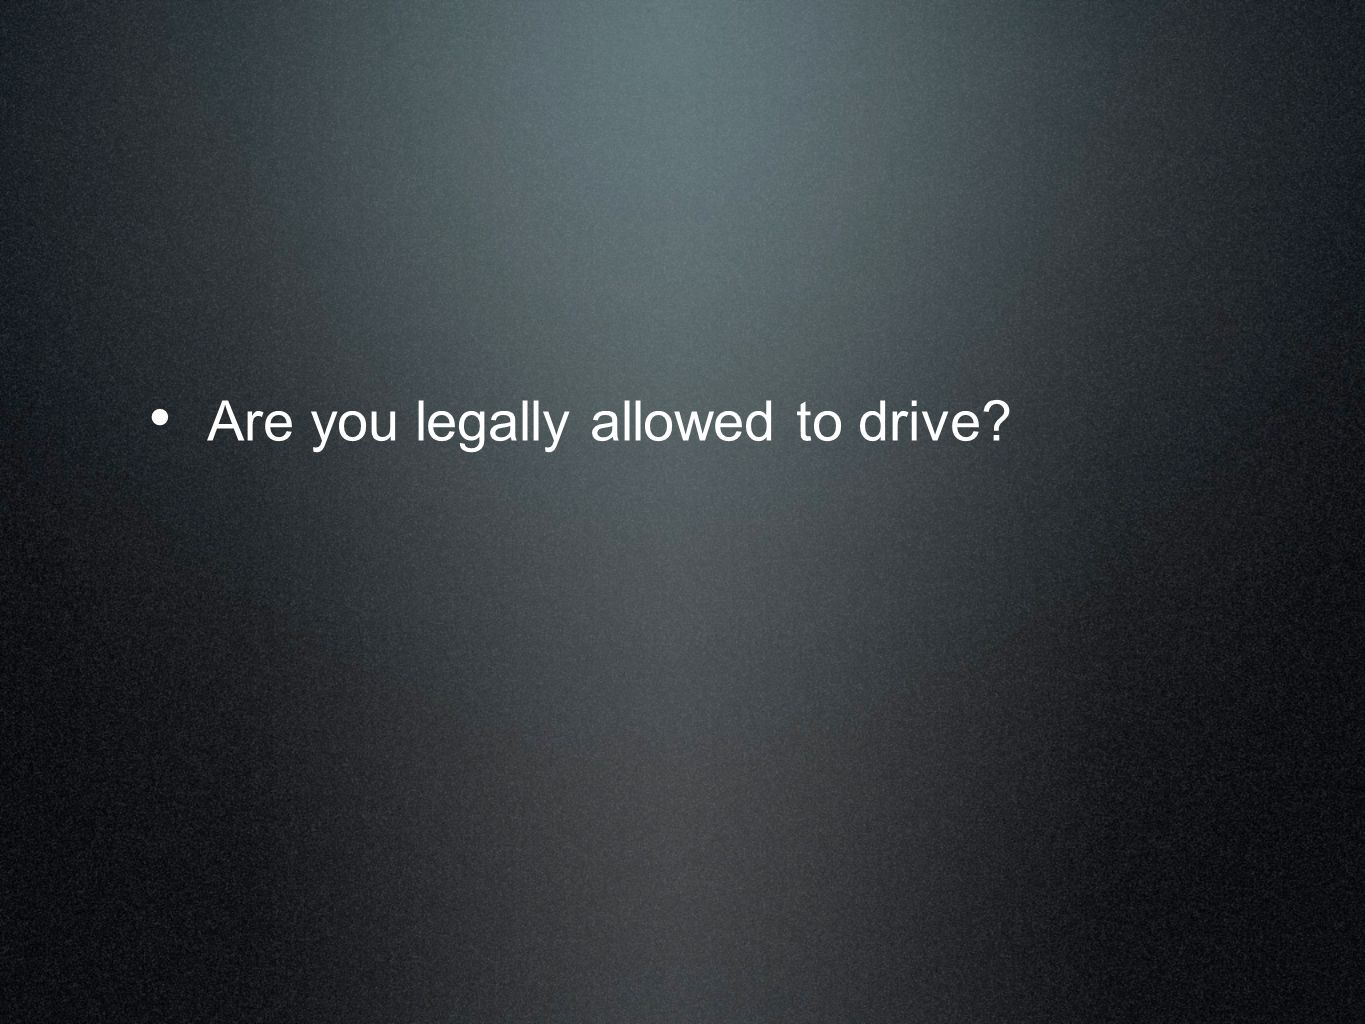 Are you legally allowed to drive